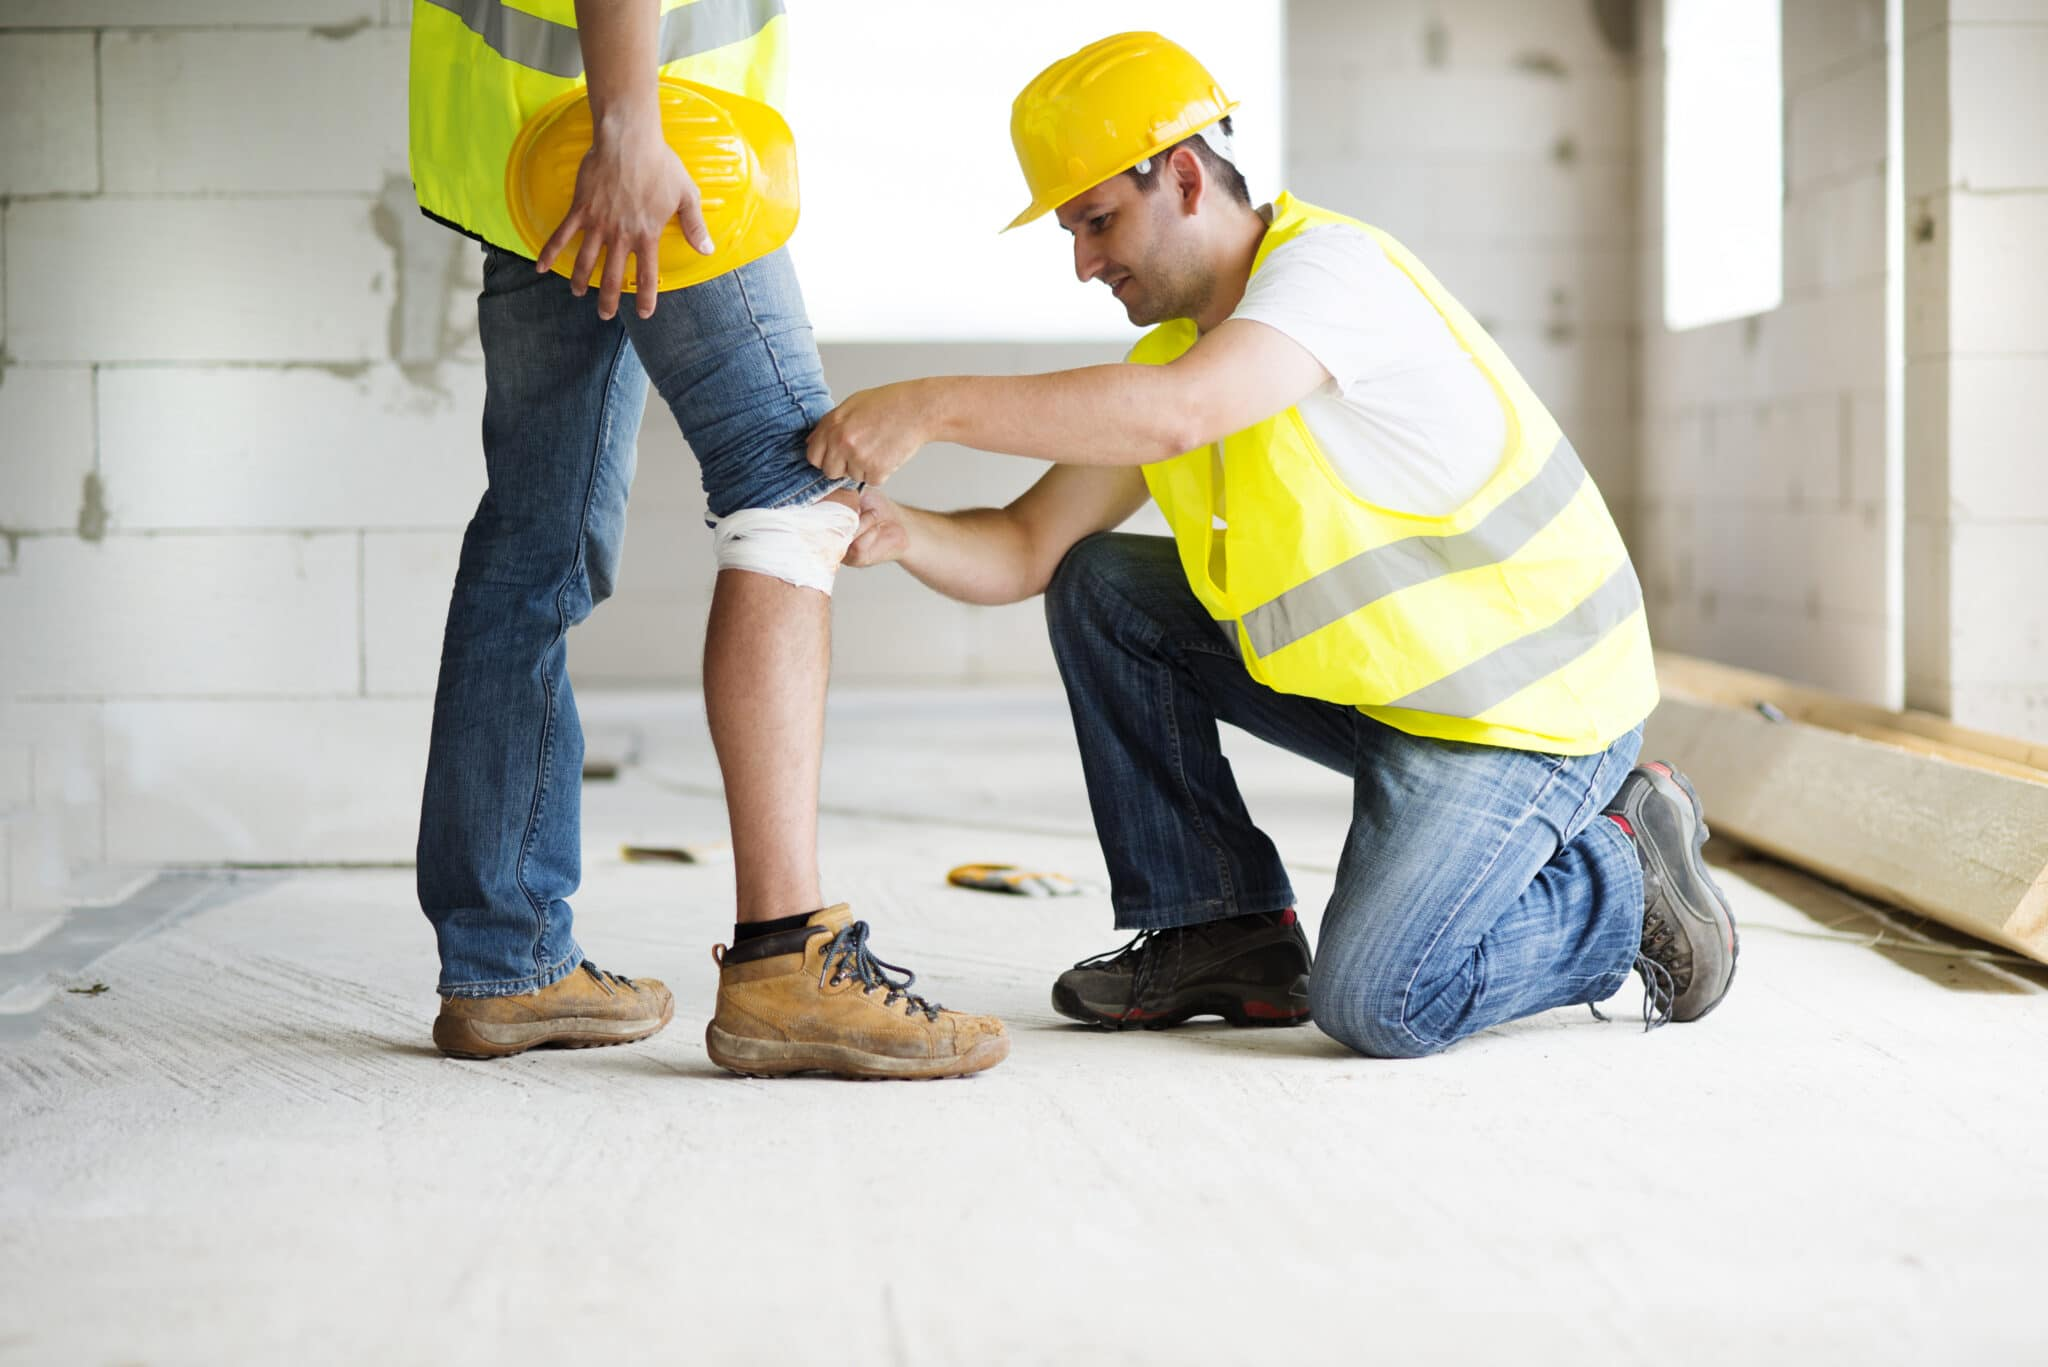 construction worker on job site bandaging coworker's knee